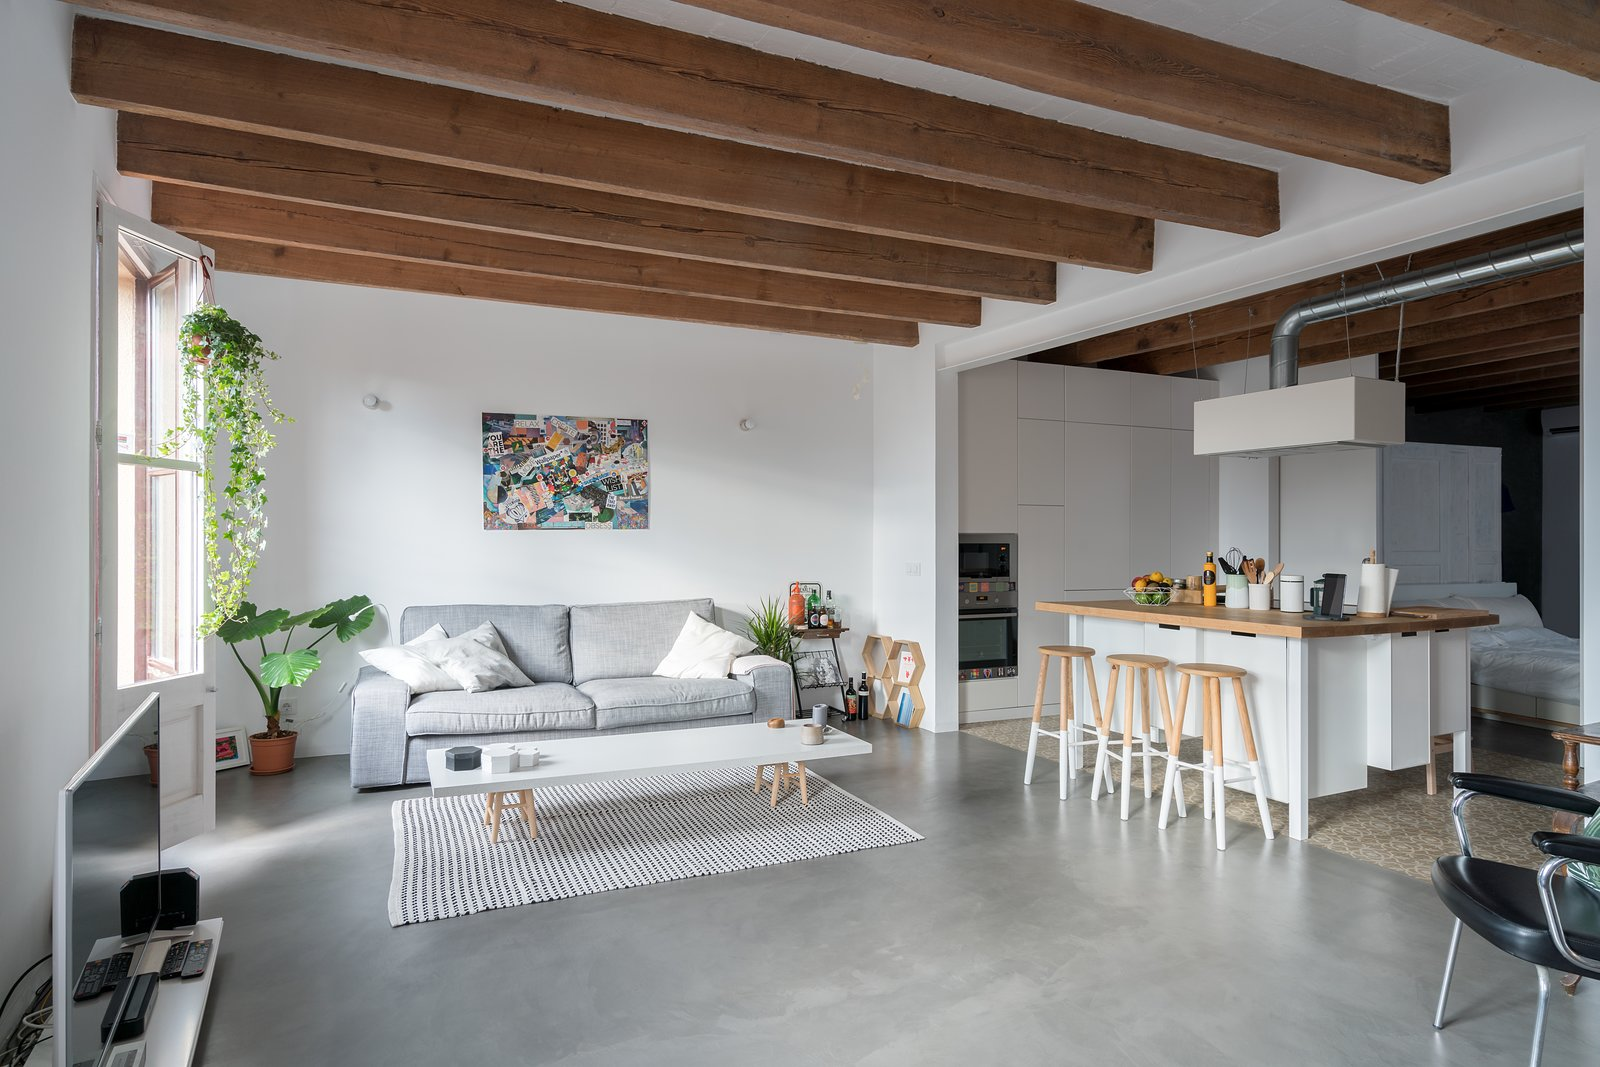 Living Room Tagged: White Cabinet, Chair, Concrete Floor, Porcelain Tile Floor, Wood Counter, Living Room, Sofa, and Coffee Tables.  Old Town Refurbishment by Habitan Architects